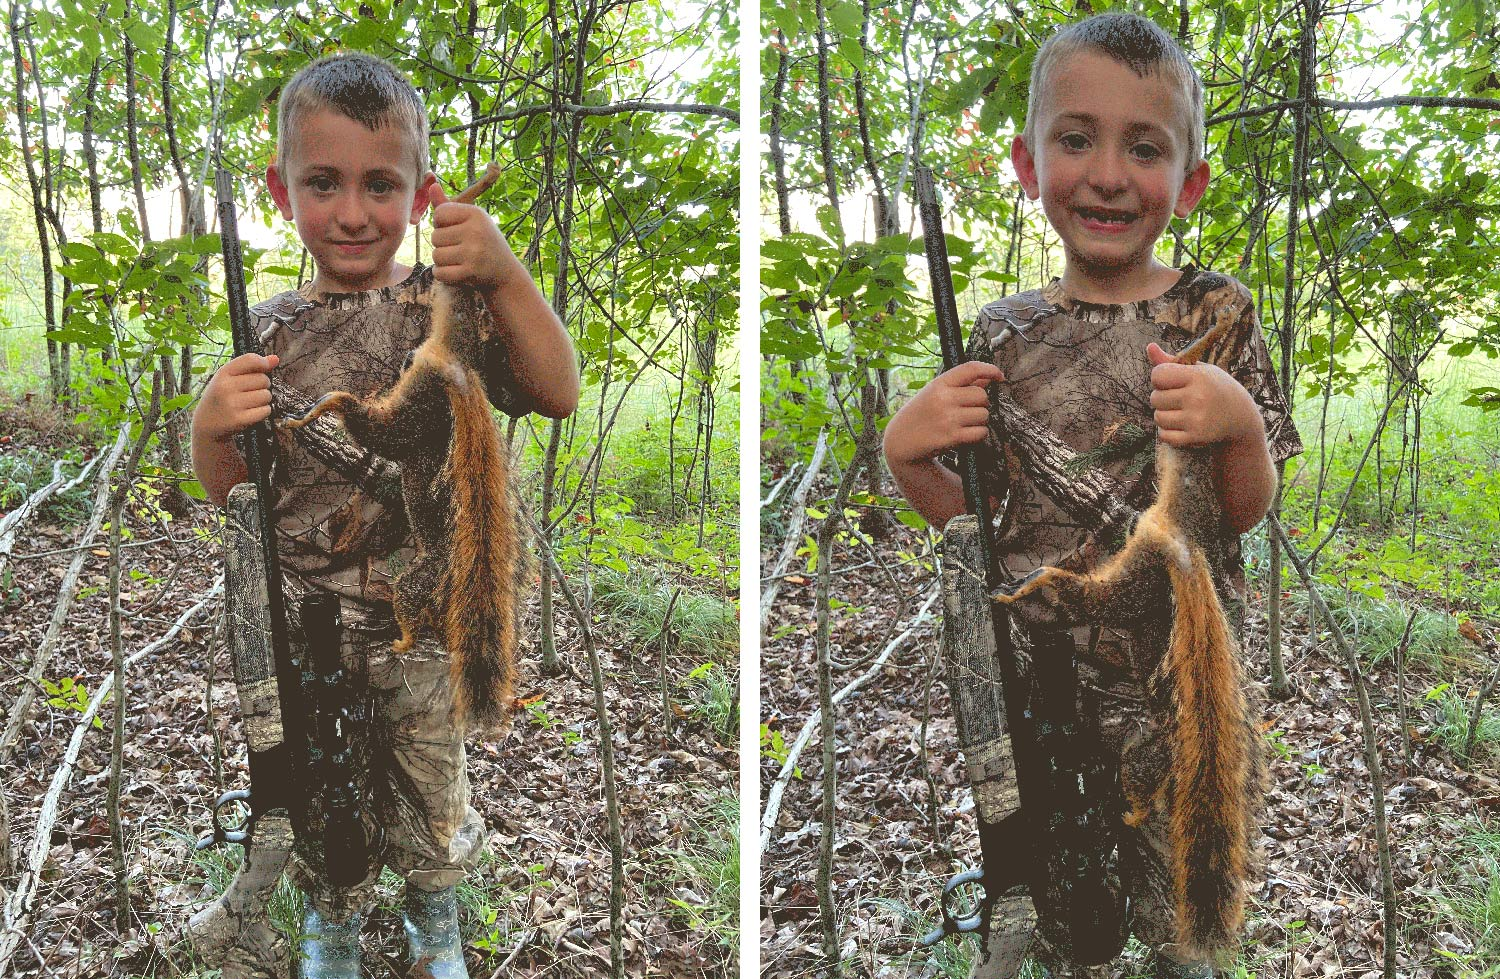 A small child holding up a squirrel in the woods.